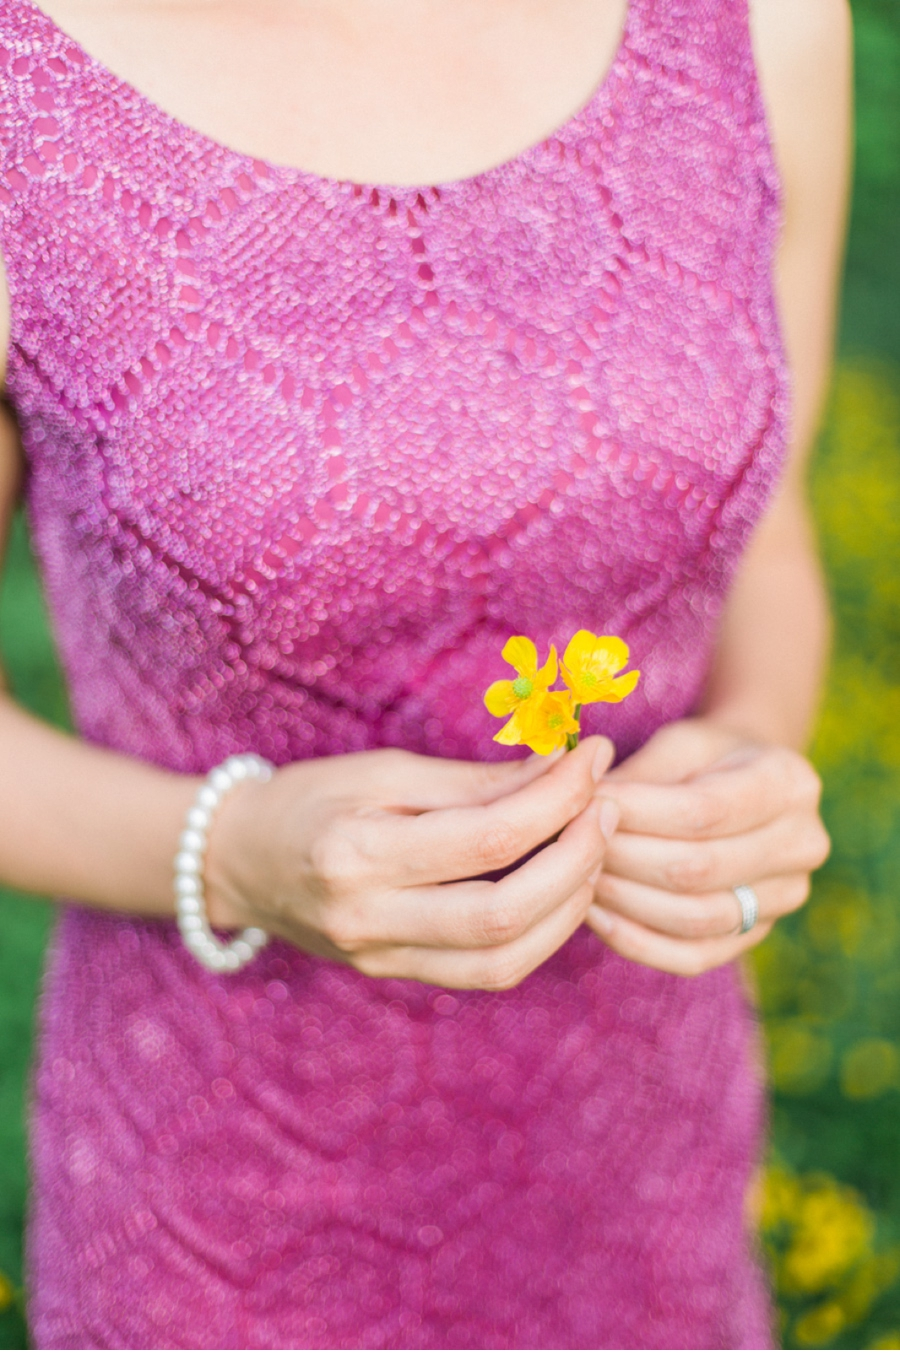 Fuscia-dress-with-yellow-wildflowers